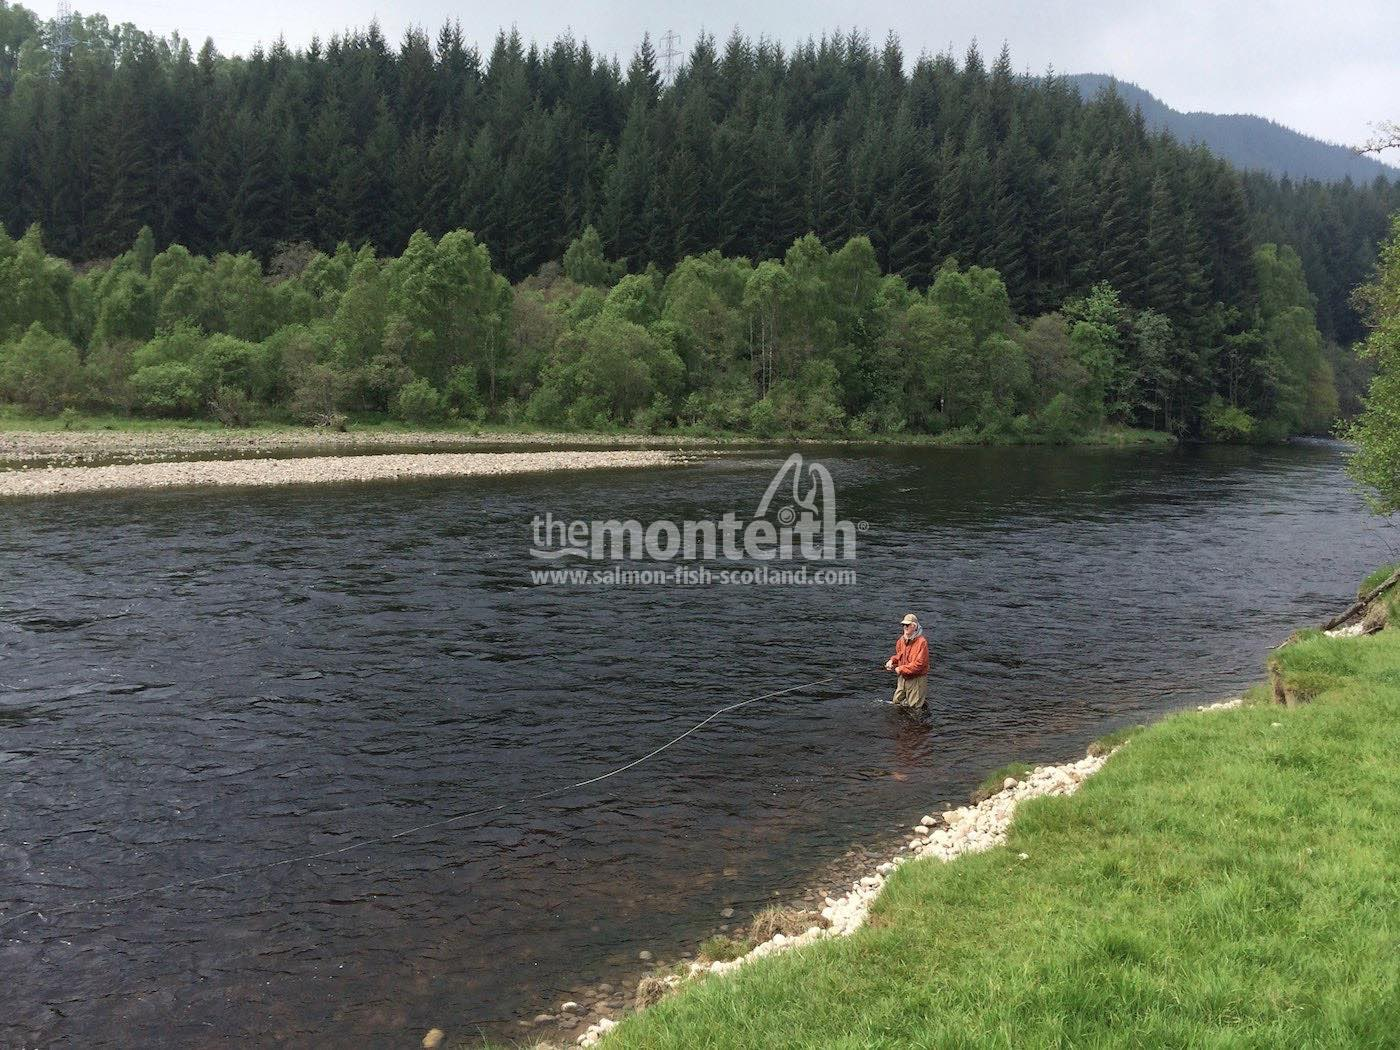 Lower Tummel 27